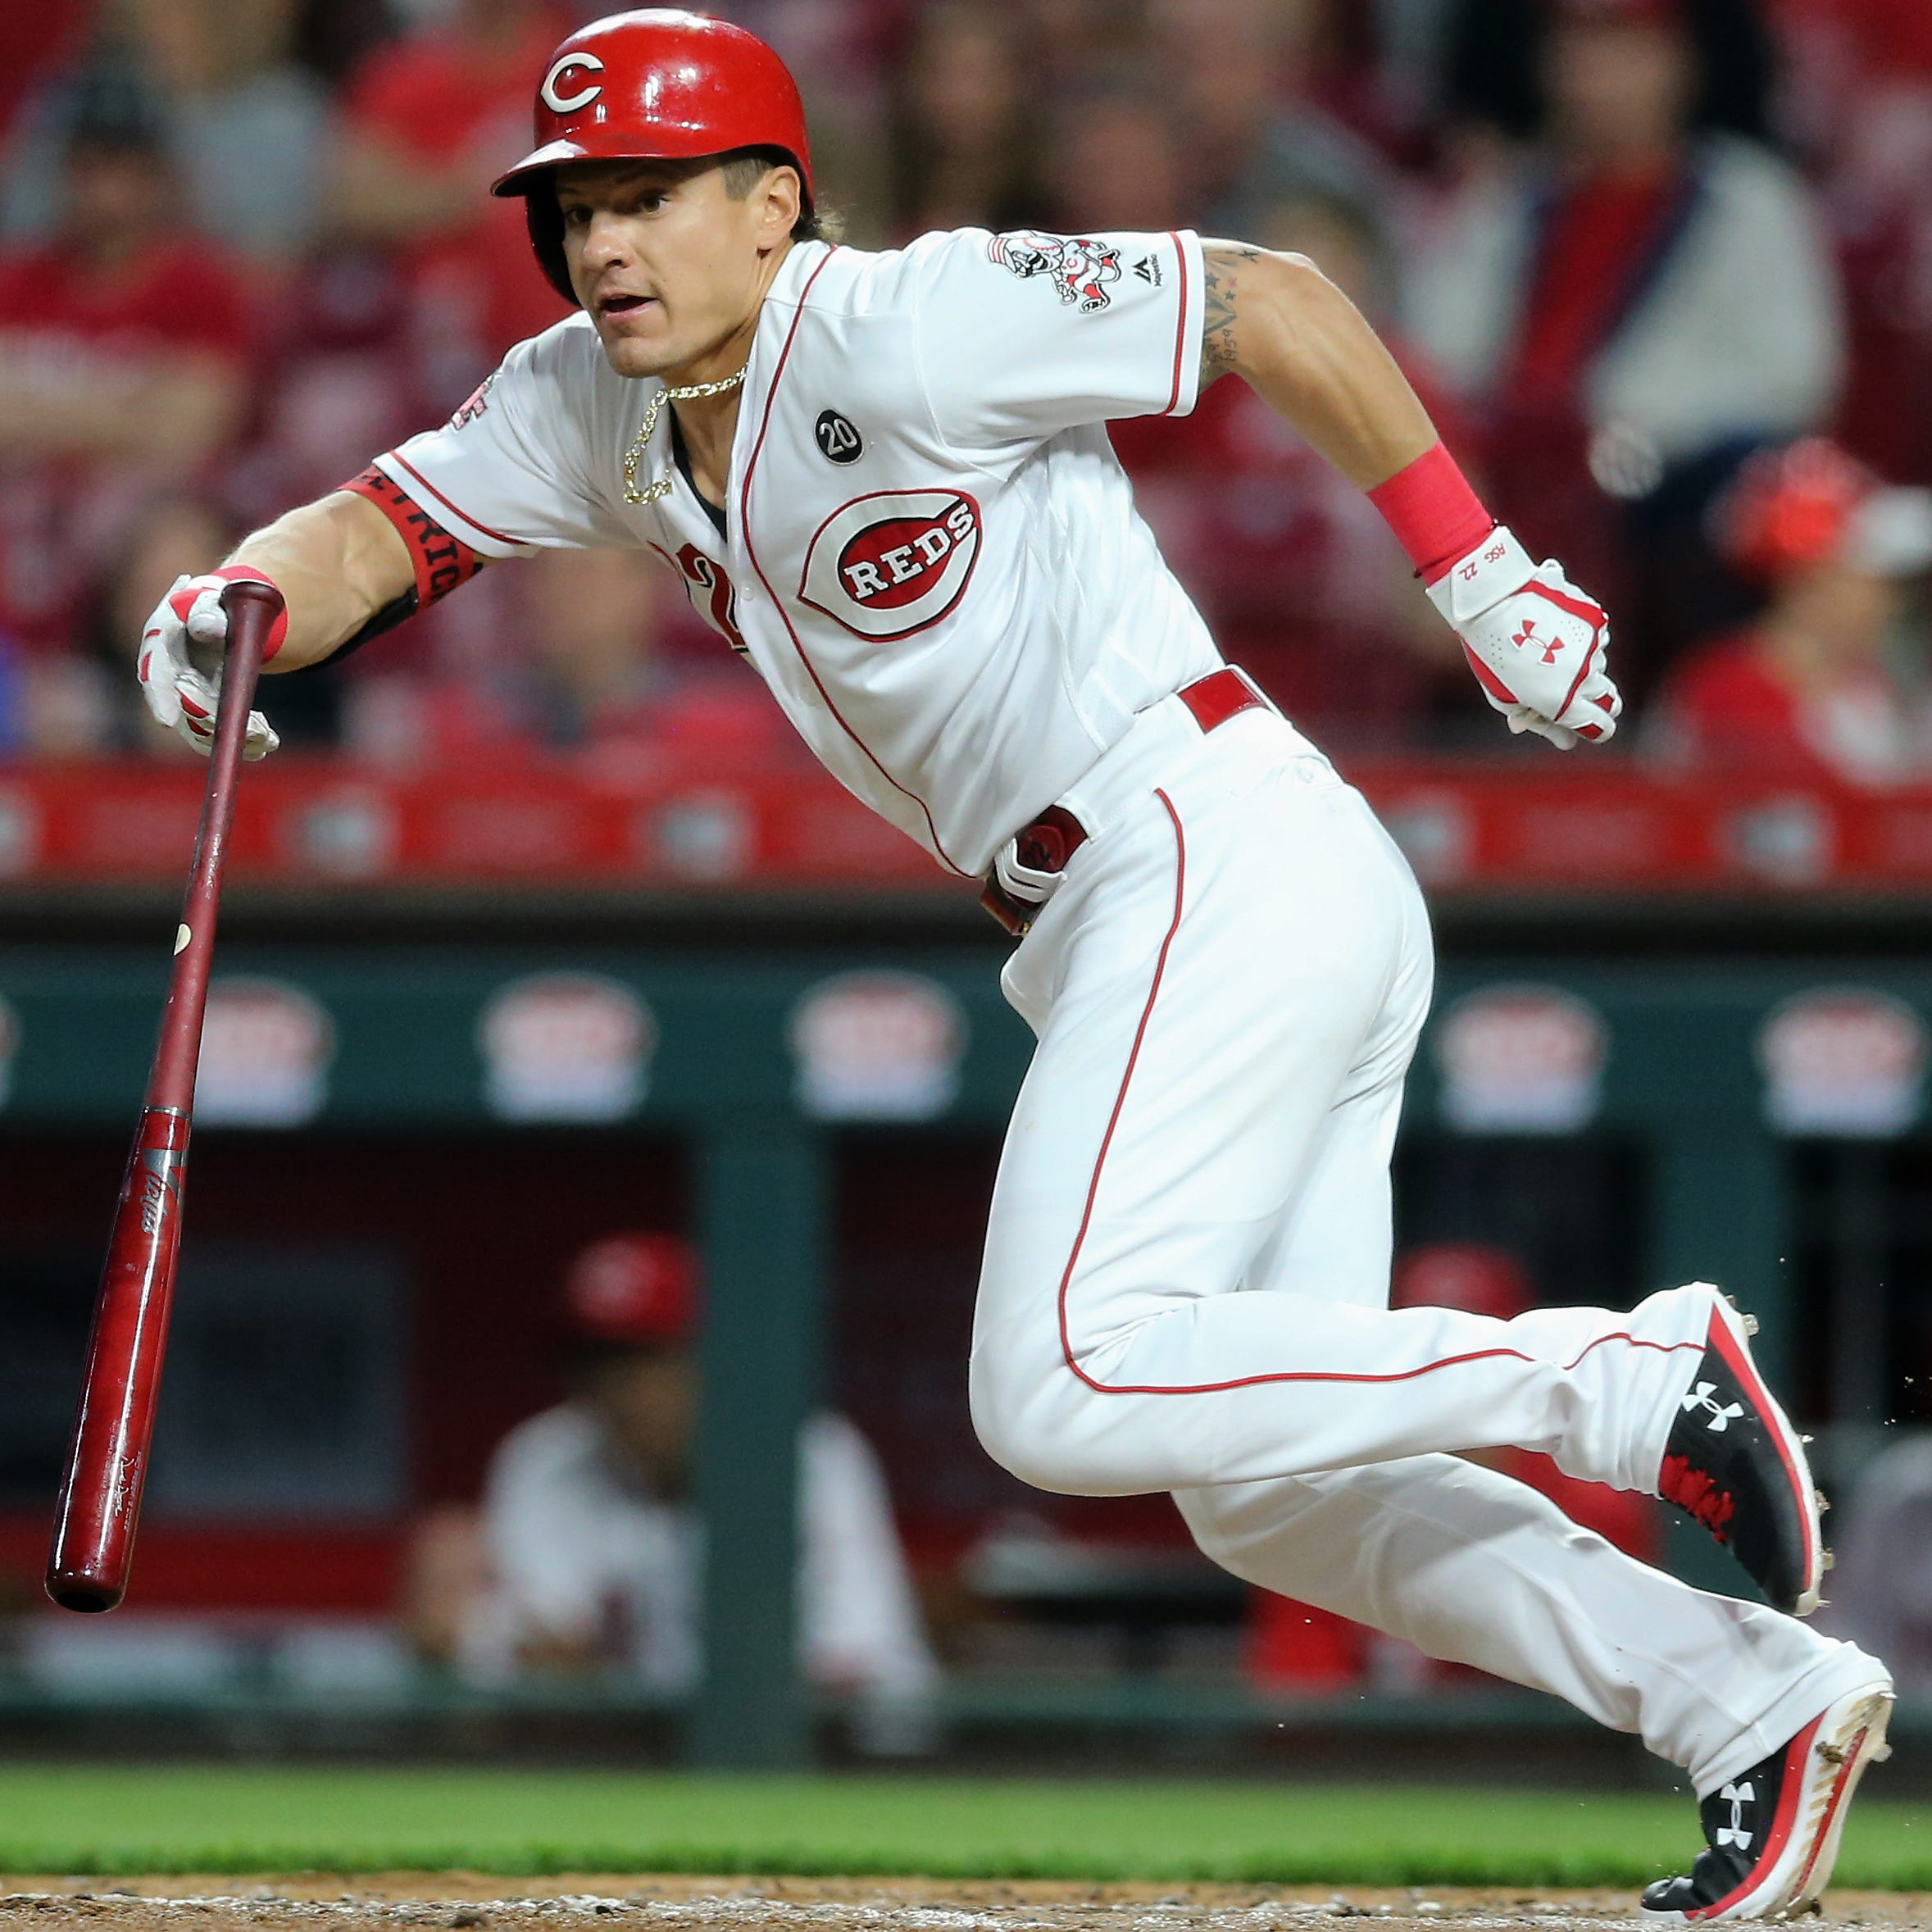 To bunt or not, that is a question the Reds ponder often